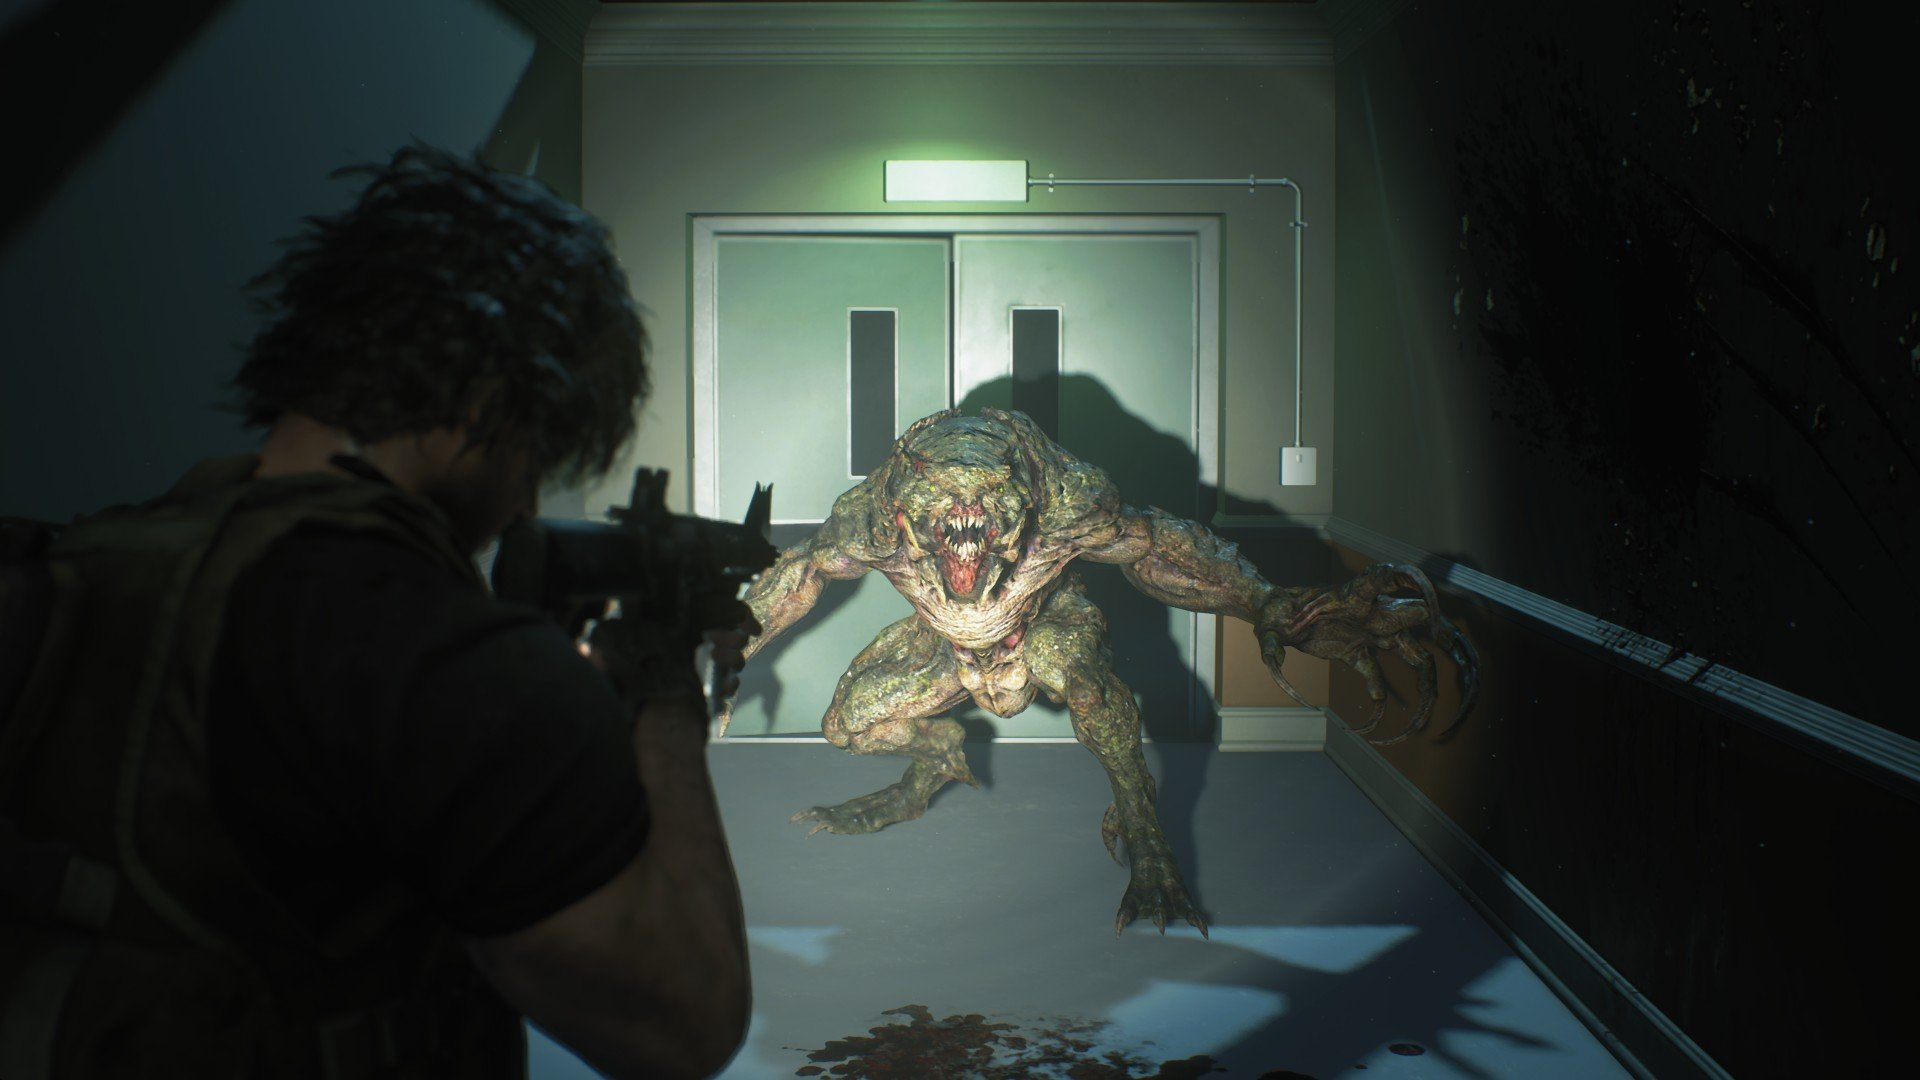 Review Resident Evil 3 Remake Is A Completely Different Game To The Original Vgc